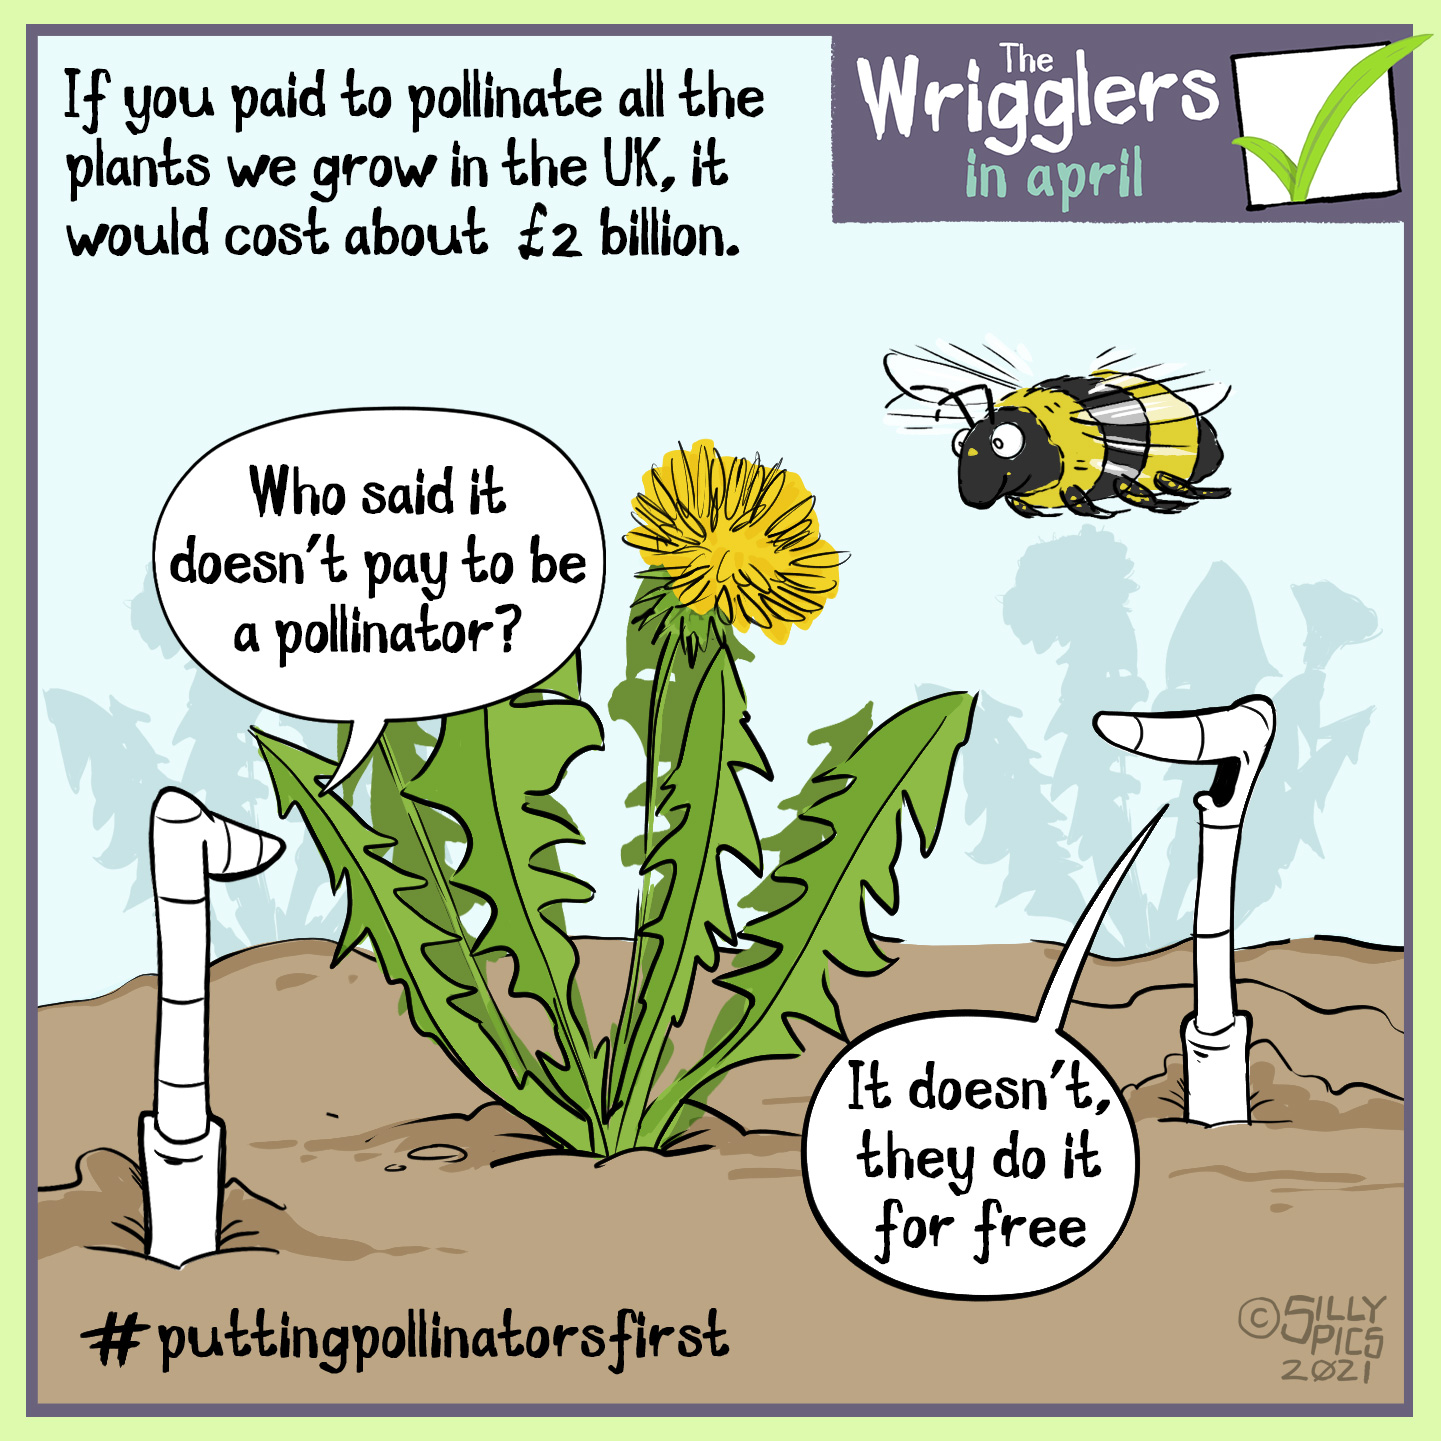 "gardening cartoon from the wrigglers about #putpollinatorsfirst - if you paid all of the insects who pollinated our plants in the UK it would cost about 2 billion pounds. In this cartoon two worms are discussing the #putpollinatorsfirstcampaign to stop the decline of bees and insects in the UK. One bee is talking to the other worm. They are stood infant of a dandelion where a bee hovers. One worm says:""Who says it doesn't pay to be a pollinator?"" The other worm says,""it doesn't, they do it for free"""